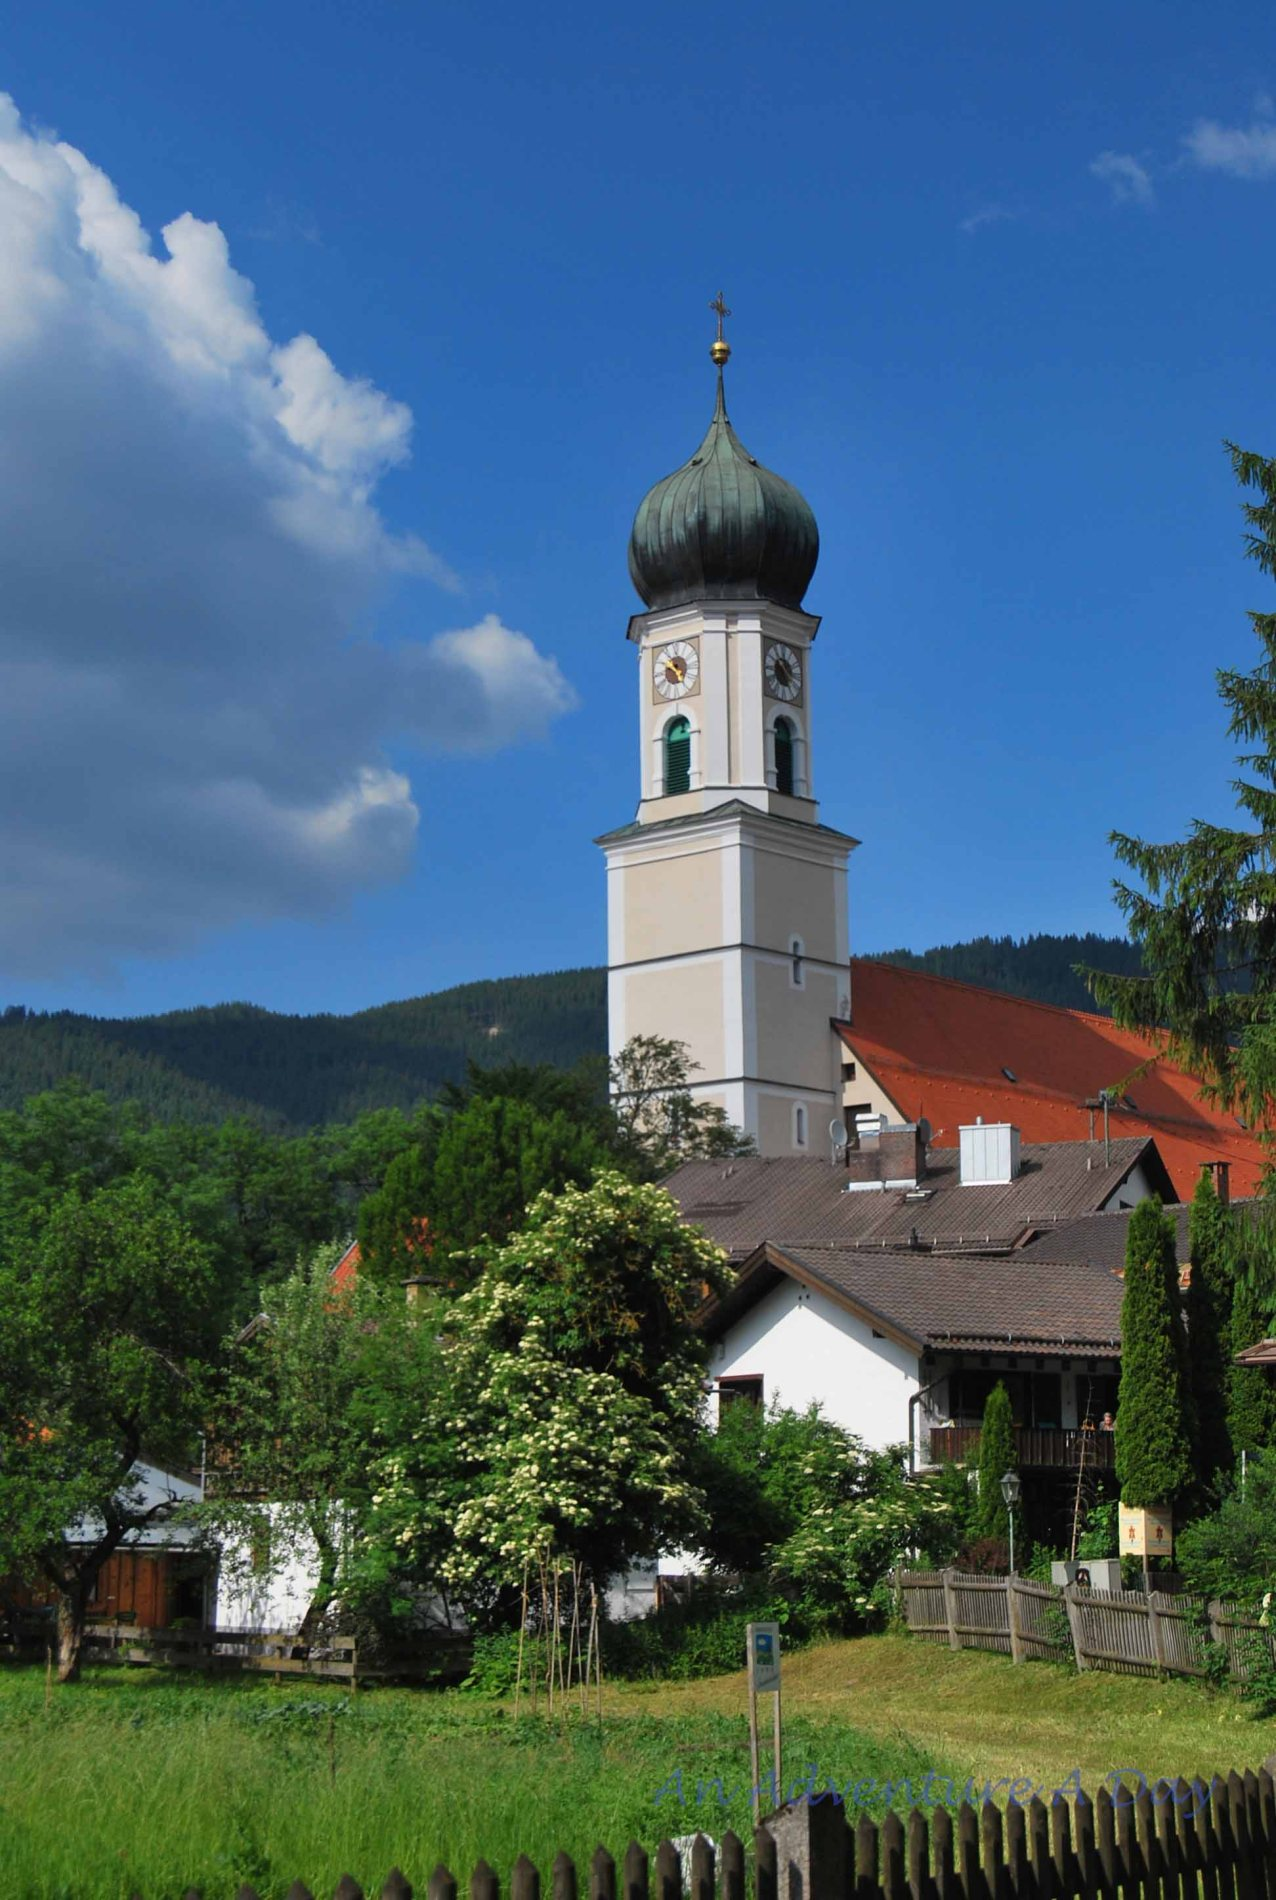 The outskirts of the charming Bavarian city of Oberammergau.